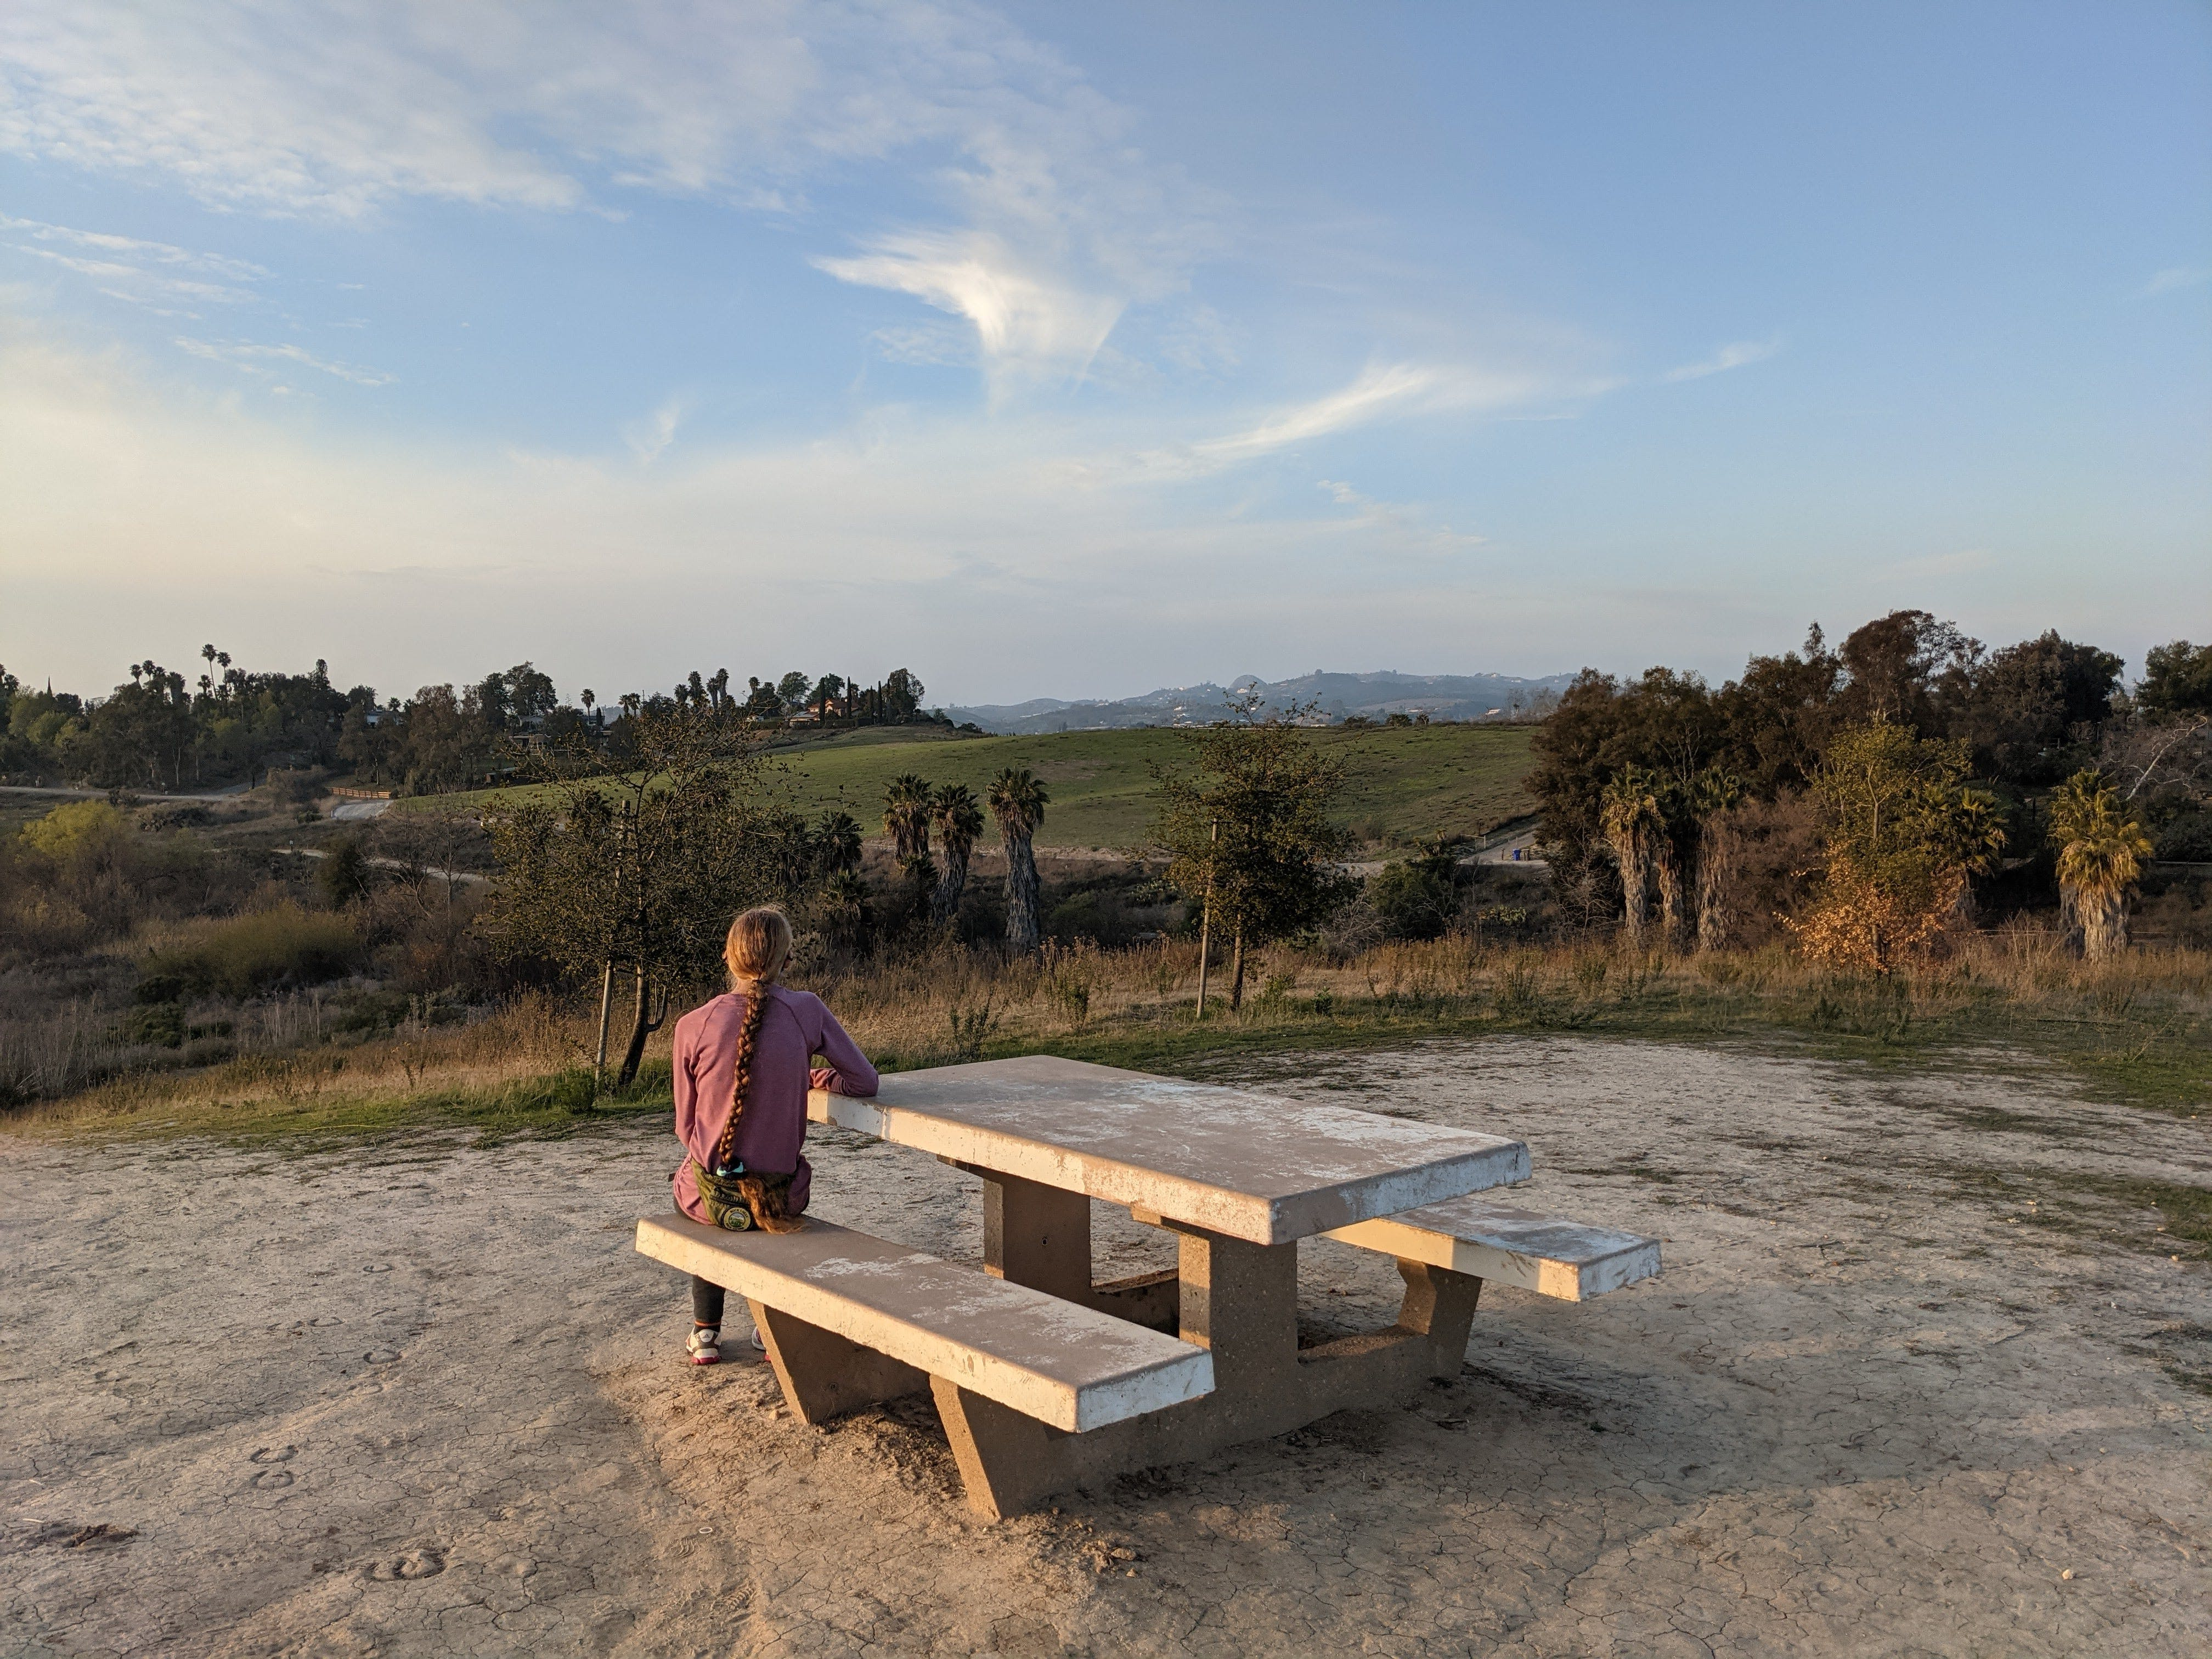 Woman sitting at a picnic table overlooking the trees and setting at Guajome County Park in San Diego